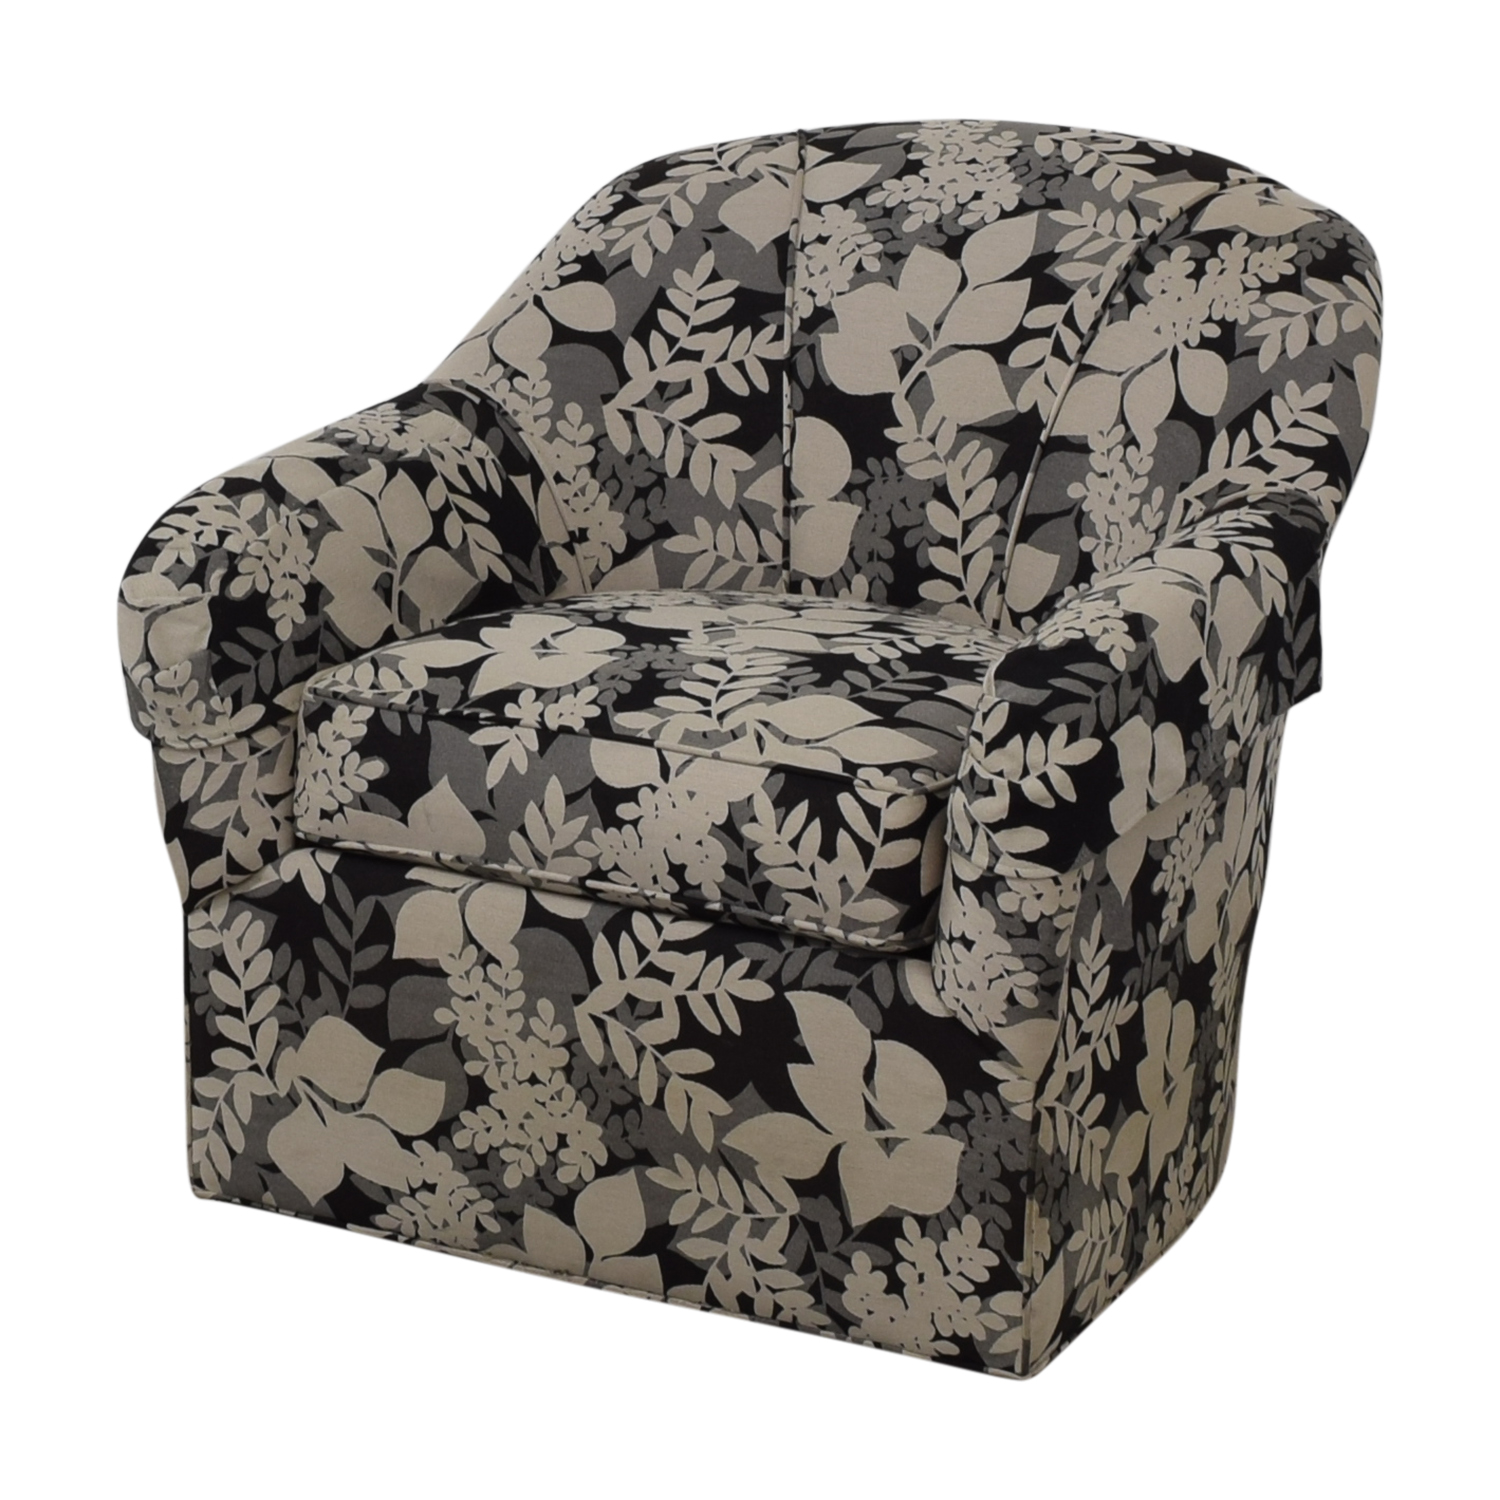 Ethan Allen Ethan Allen Black White and Grey Leaf Pattern Swivel Arm Chair price